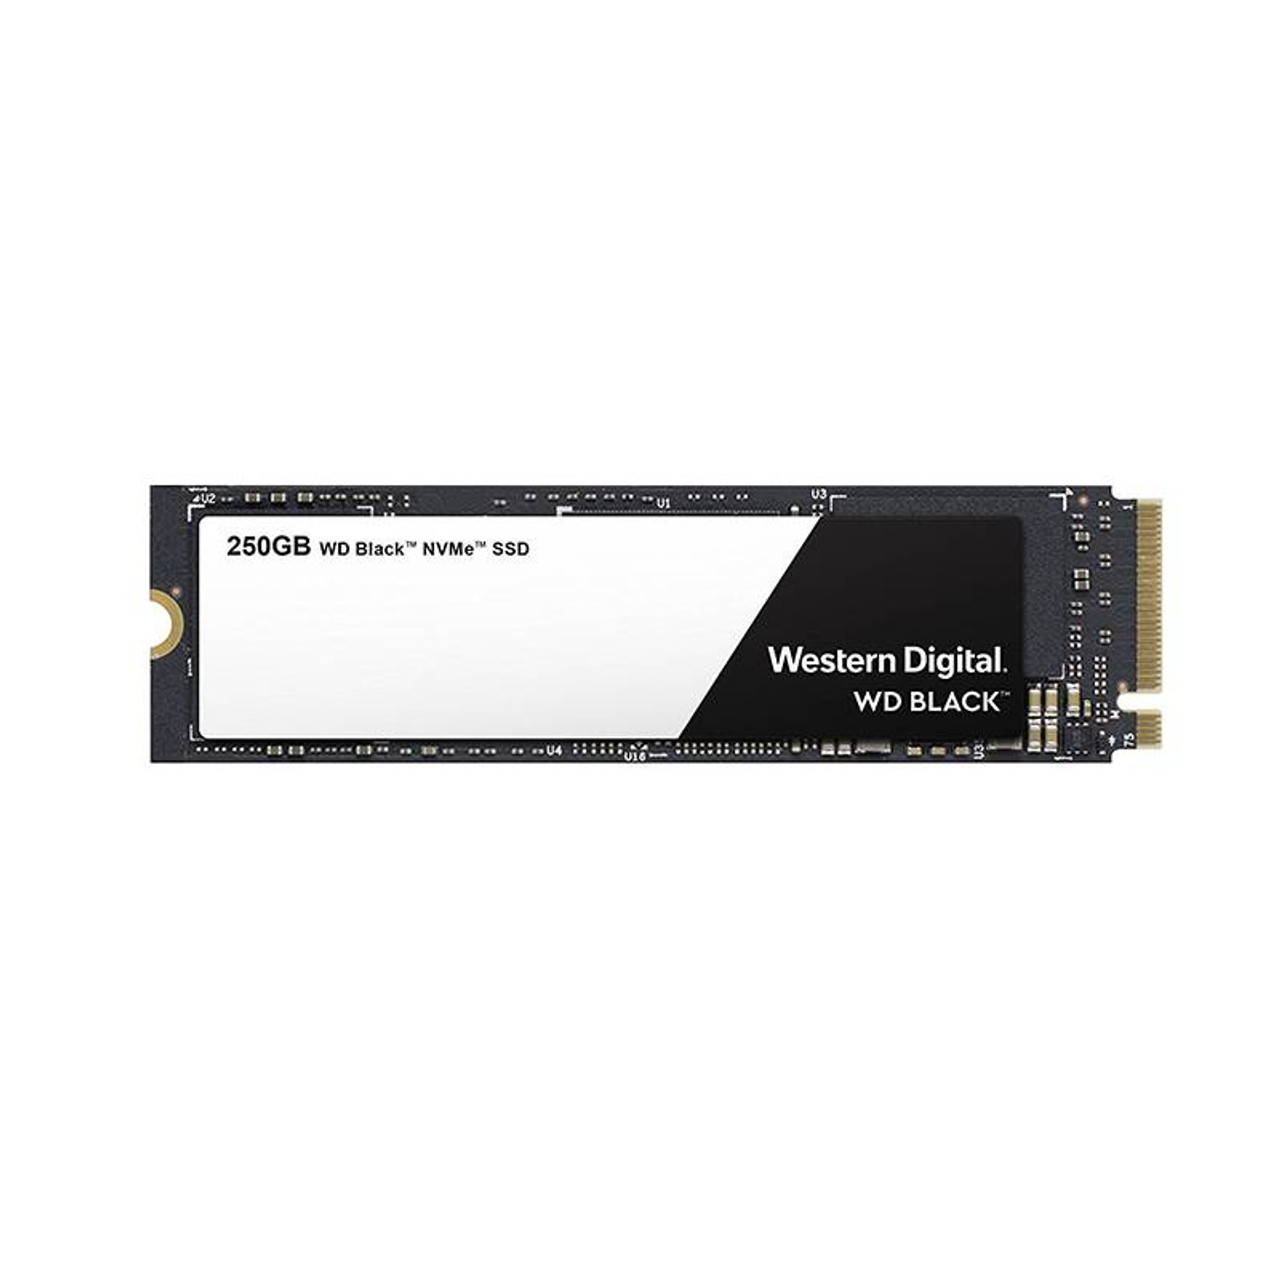 Product image for Western Digital WD Black NVMe SSD 250GB M.2 | CX Computer Superstore